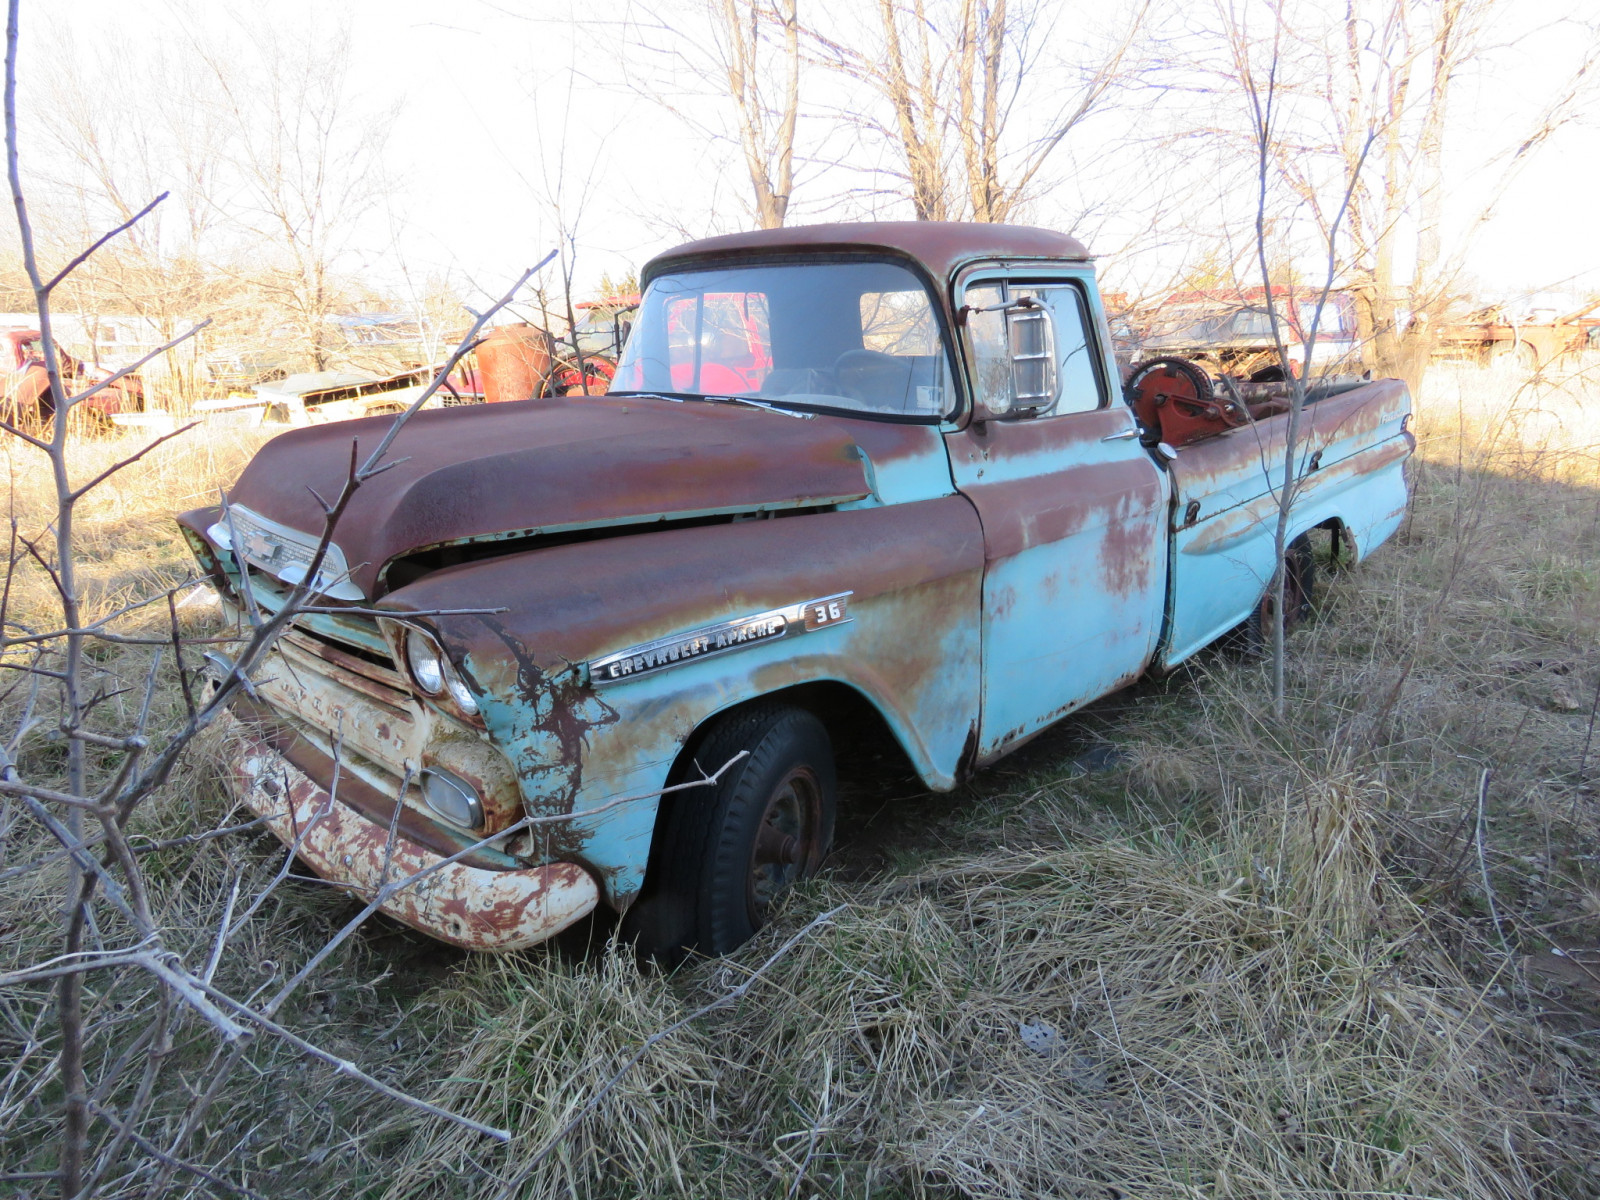 1958 Chevrolet Fleetside Pickup - Image 2